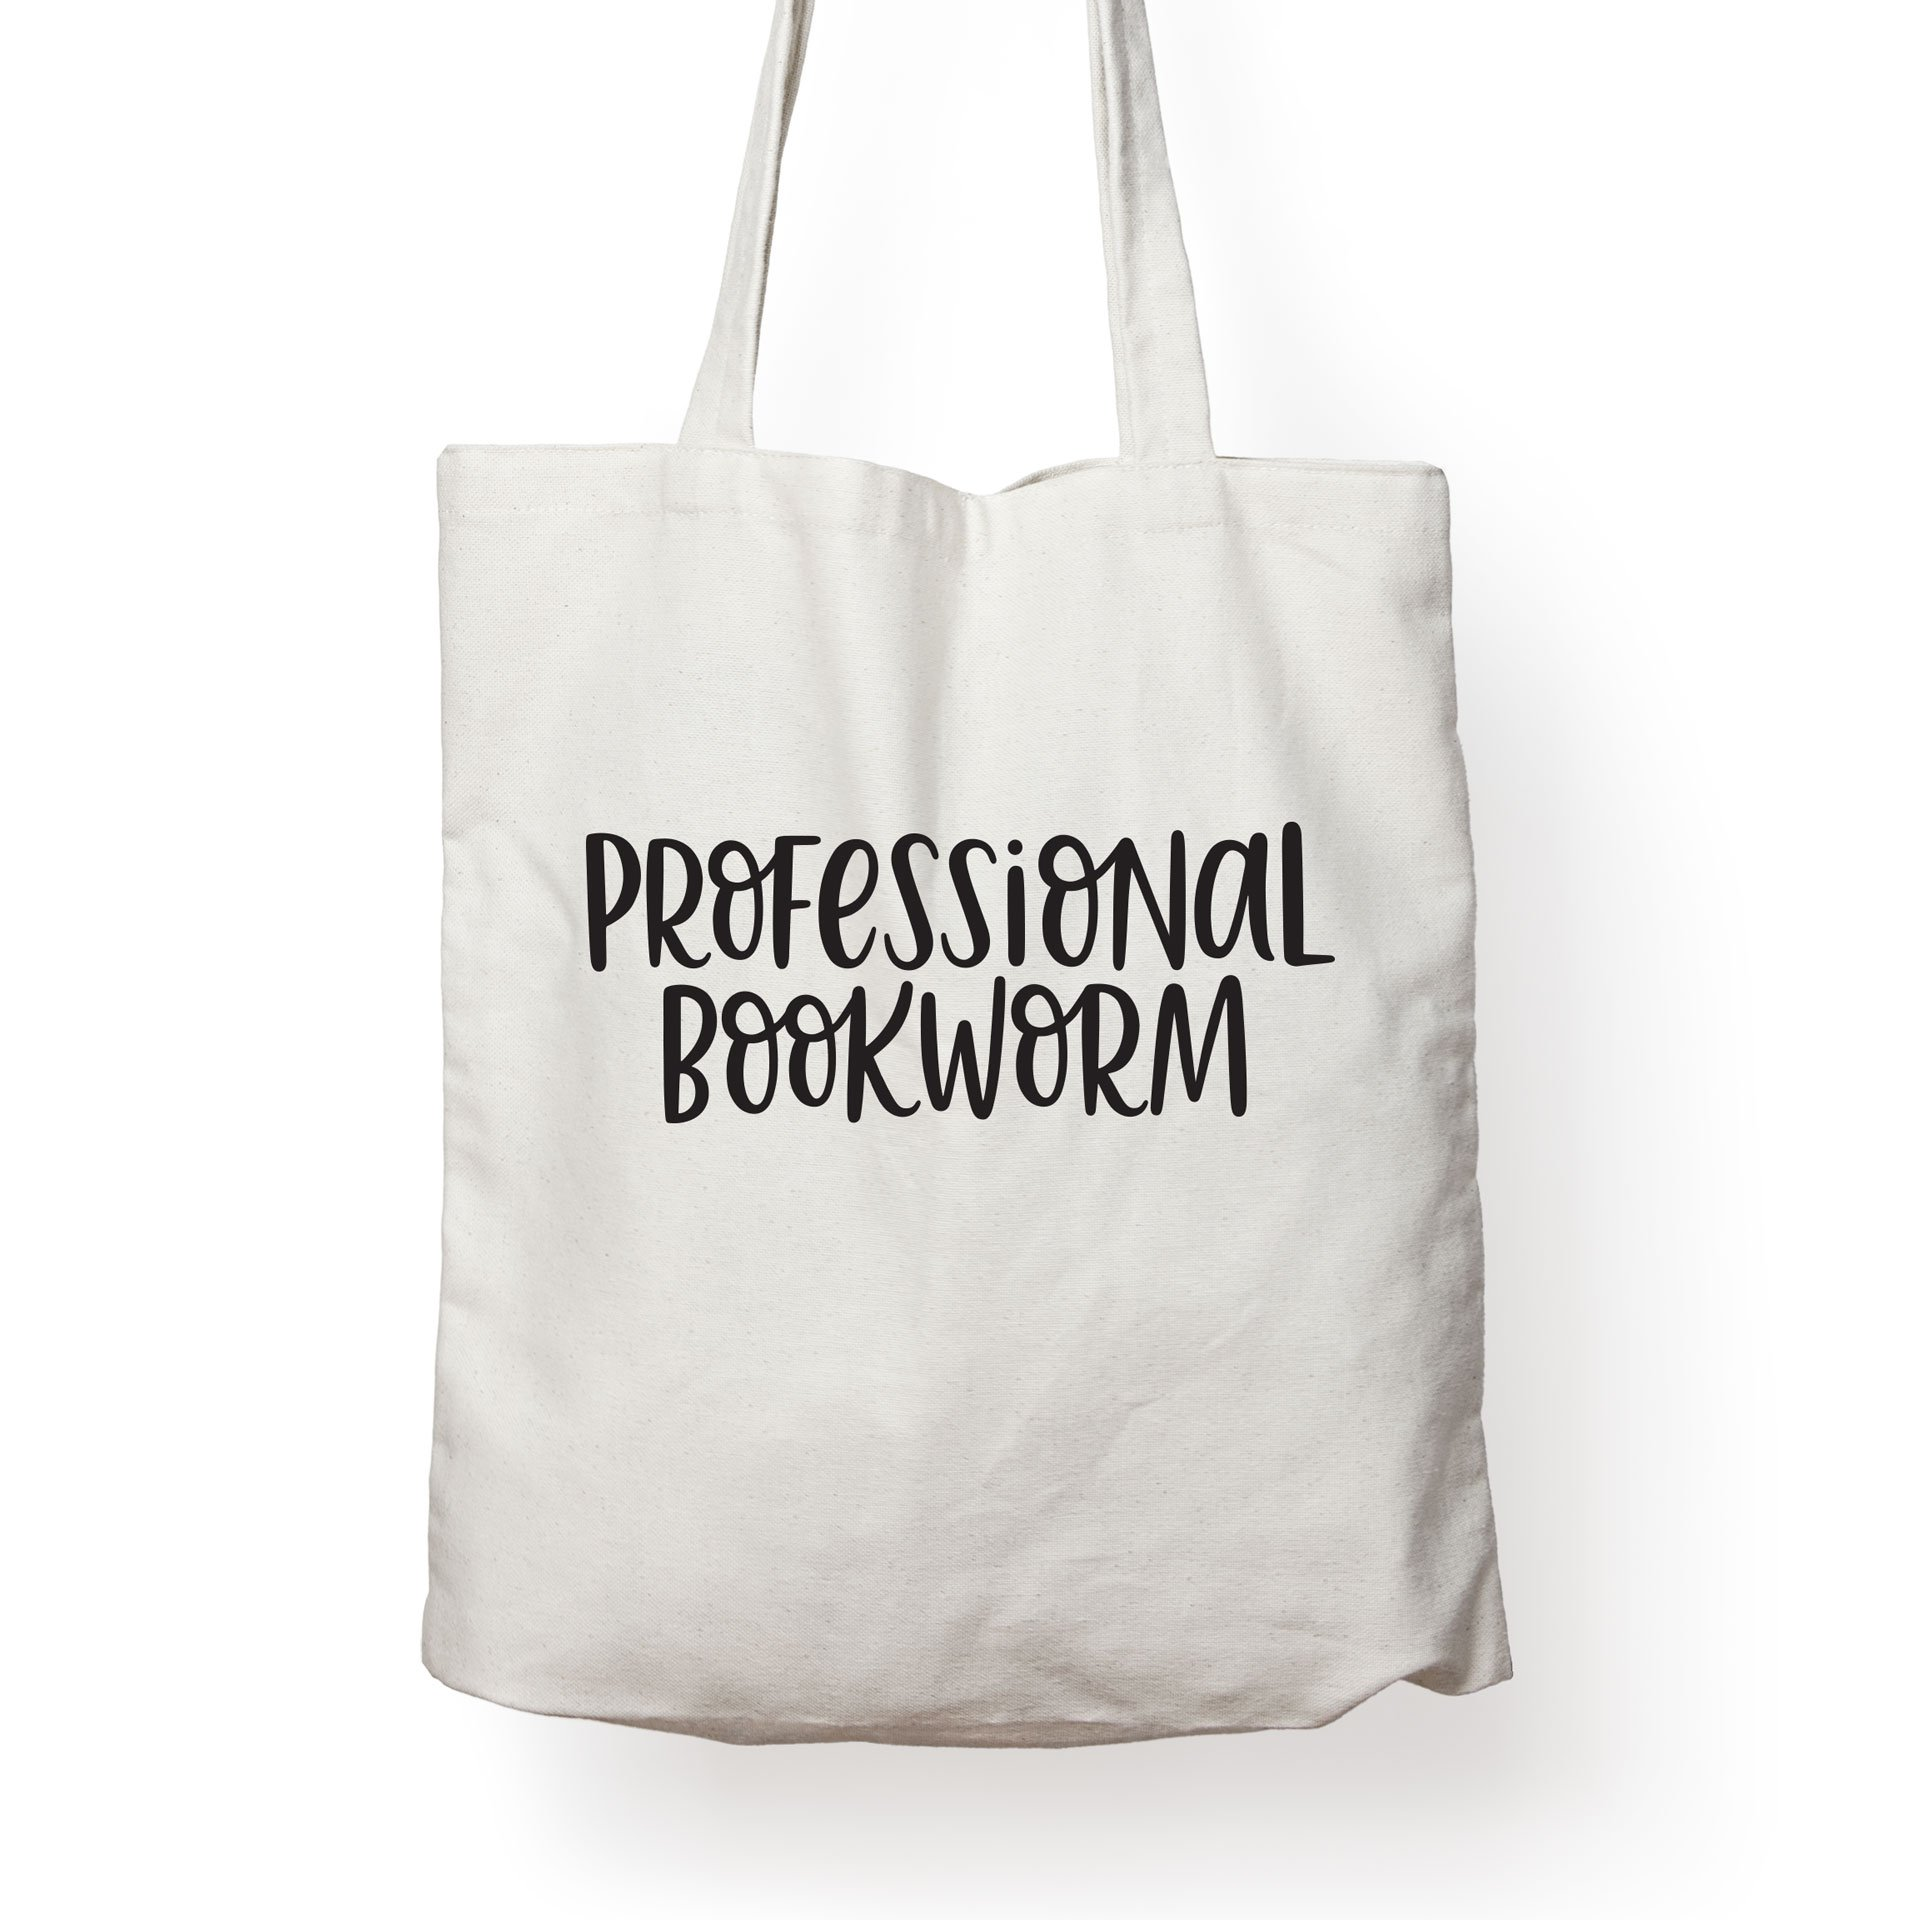 Folio Professional Bookworm - Canvas Tote Bag Ideal Book Gift! Readers Gift Your Favorite Bookworm Man Woman. Fun Literary Gifts Friends That Love Book Related Quotes Quote Totes …